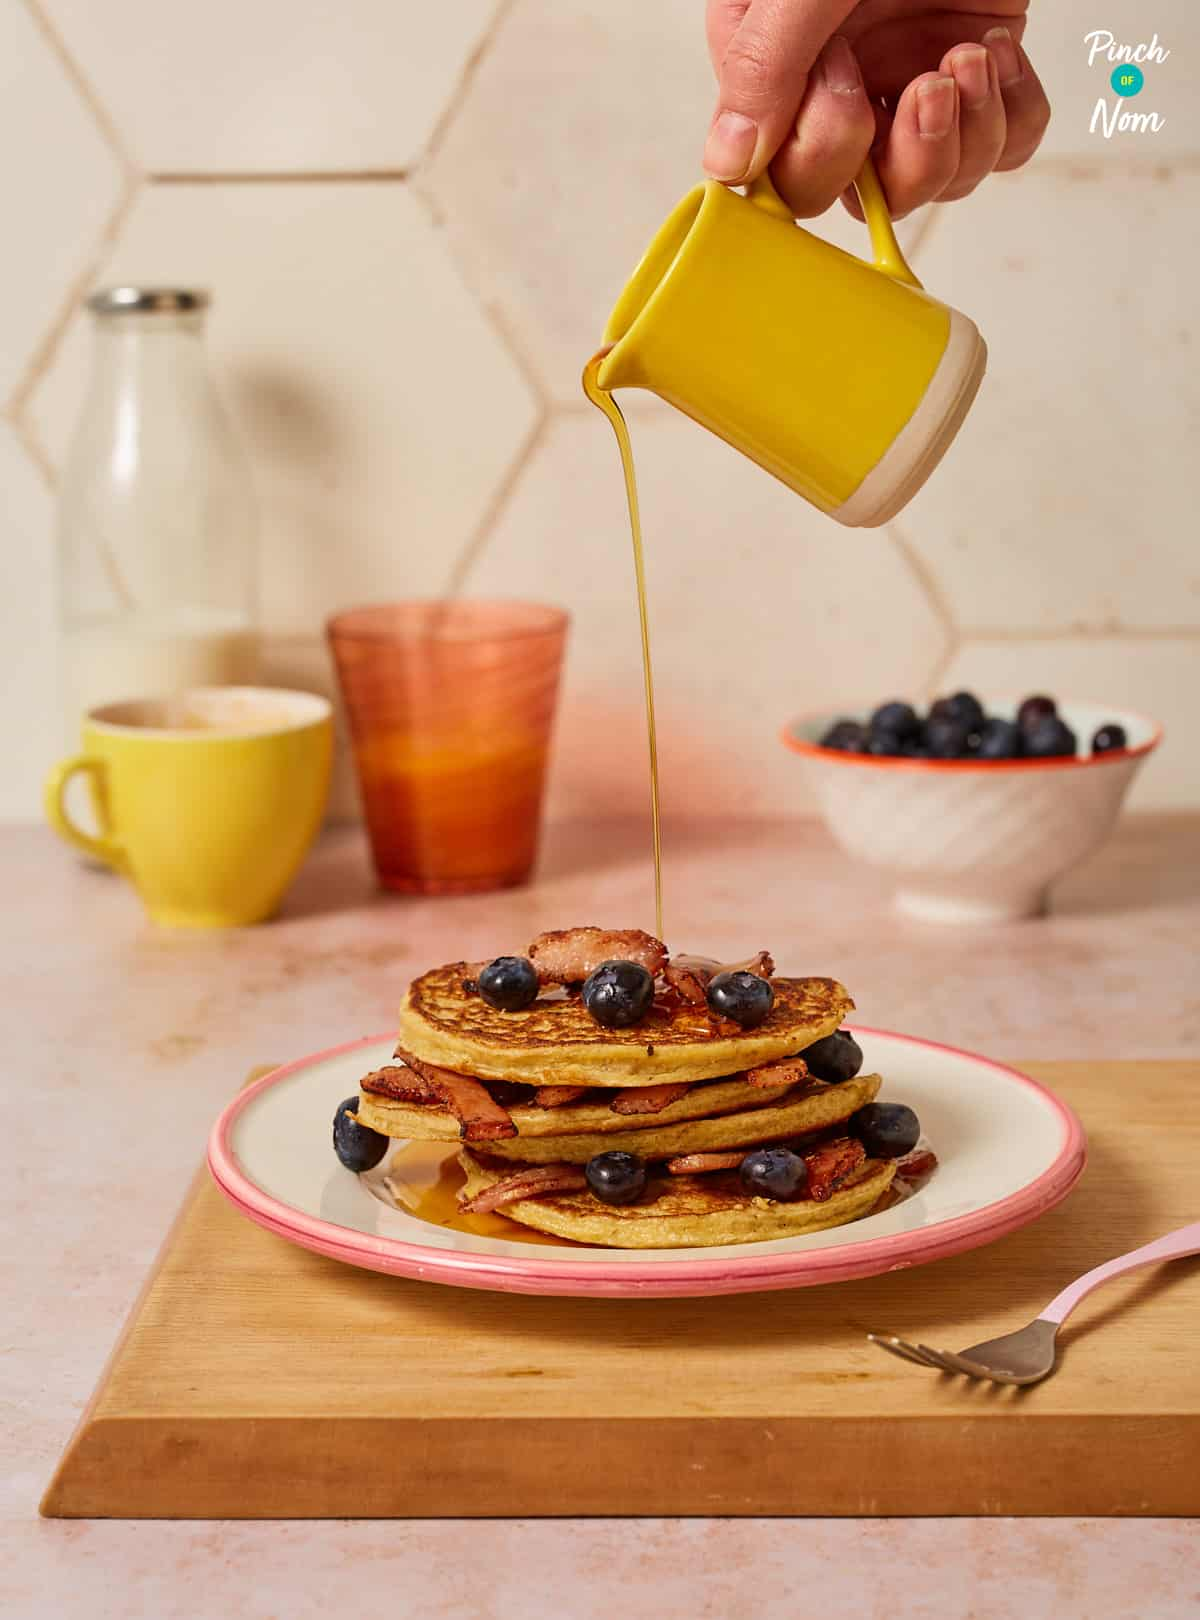 Quick and Easy Pancake Recipes | Pinch of Nom Slimming Recipes